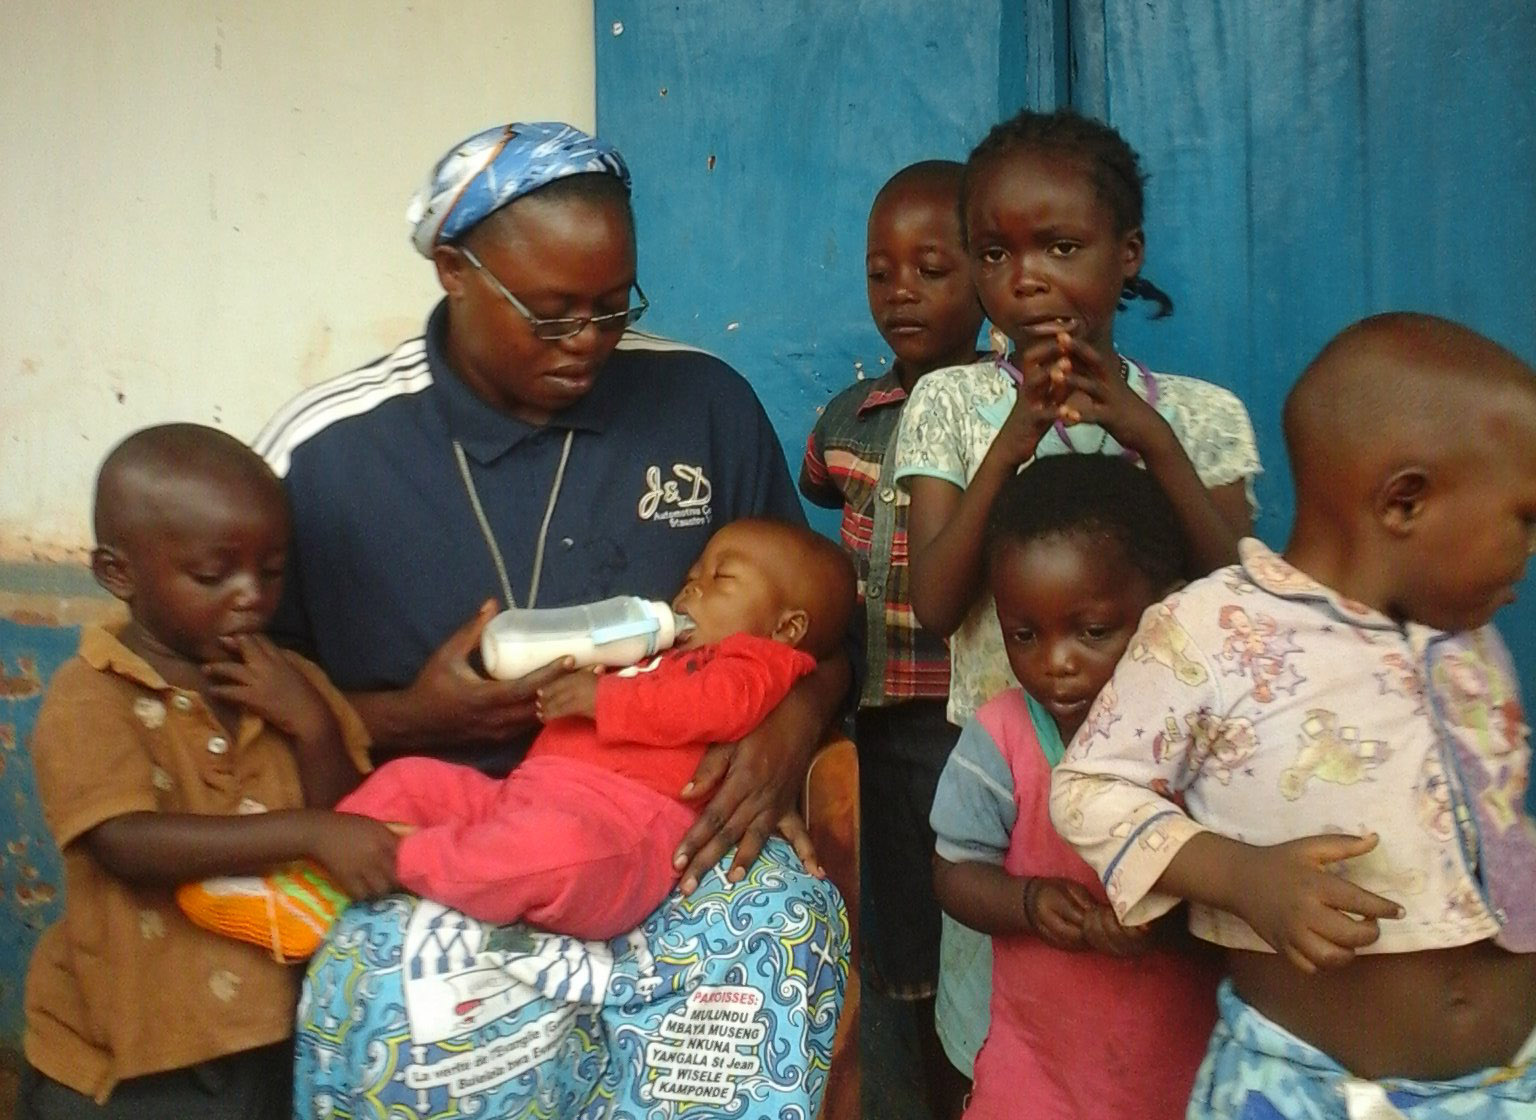 Peter Freissle has given crucial support to the Ndekesha orphans in DR Congo